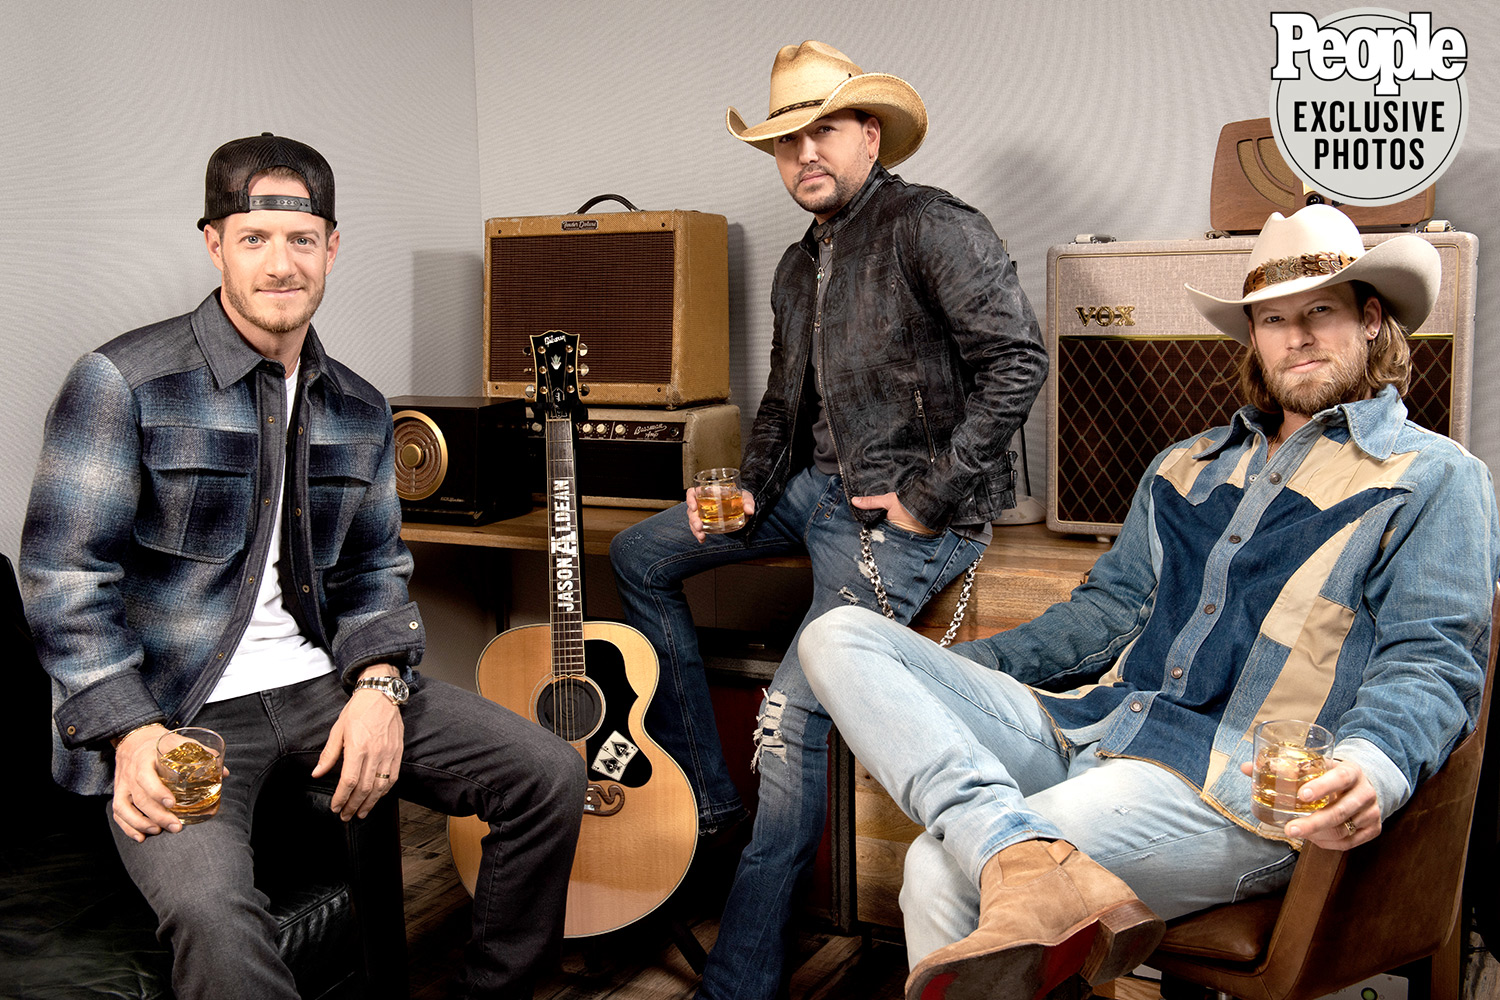 Whiskey Lovers' Jason Aldean and Florida Georgia Line Collaborate to Launch New Wolf Moon Bourbon